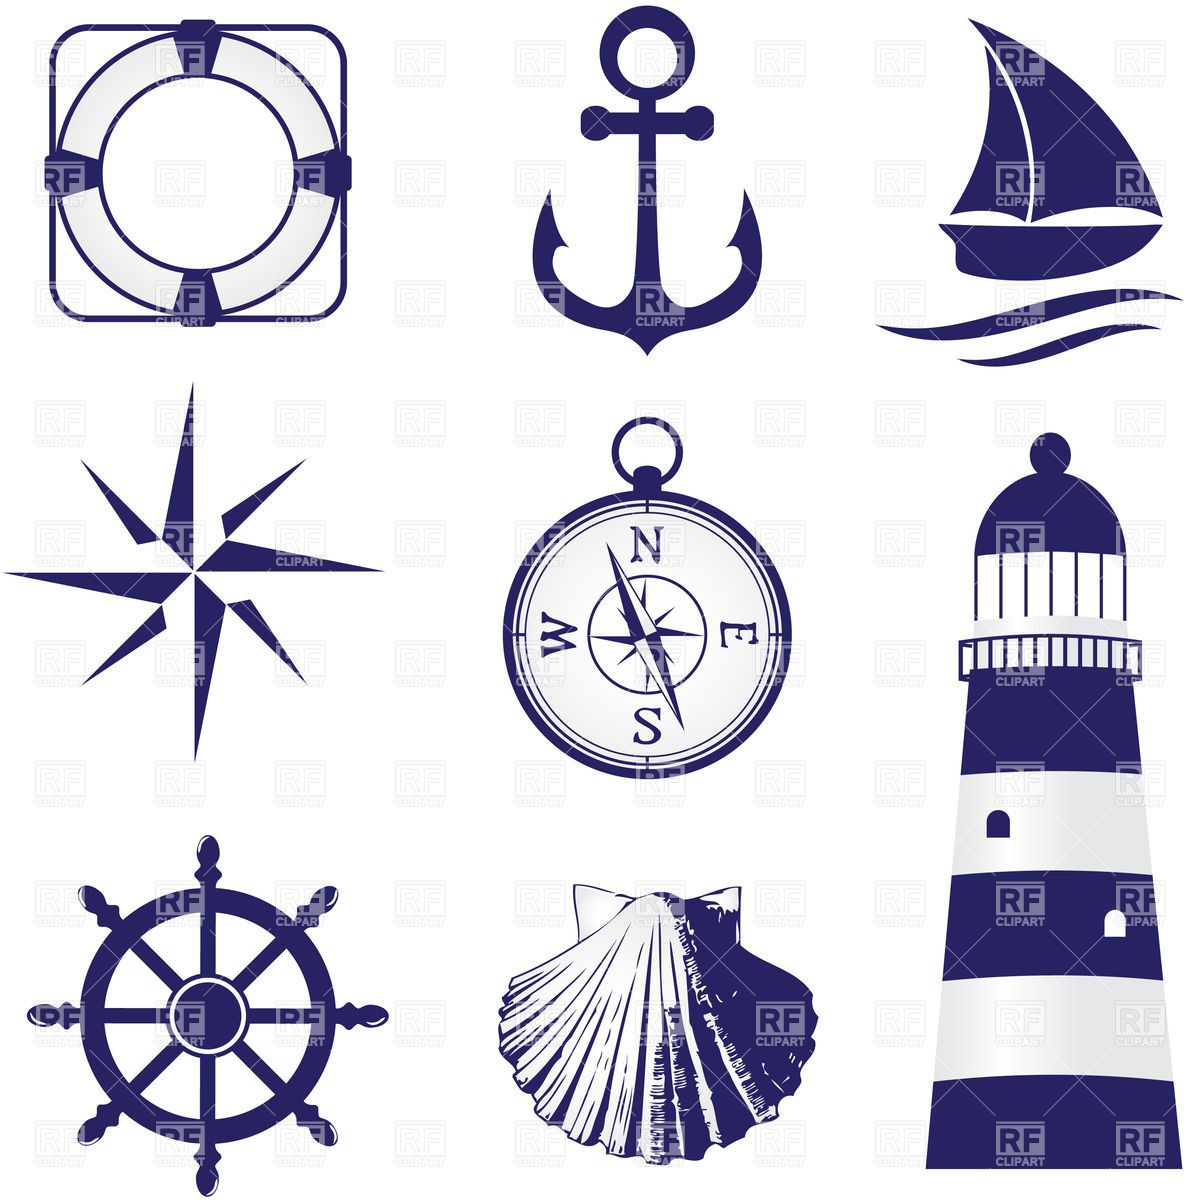 Free Nautical Clip Art Downloads Clipart Free Clipart (life.